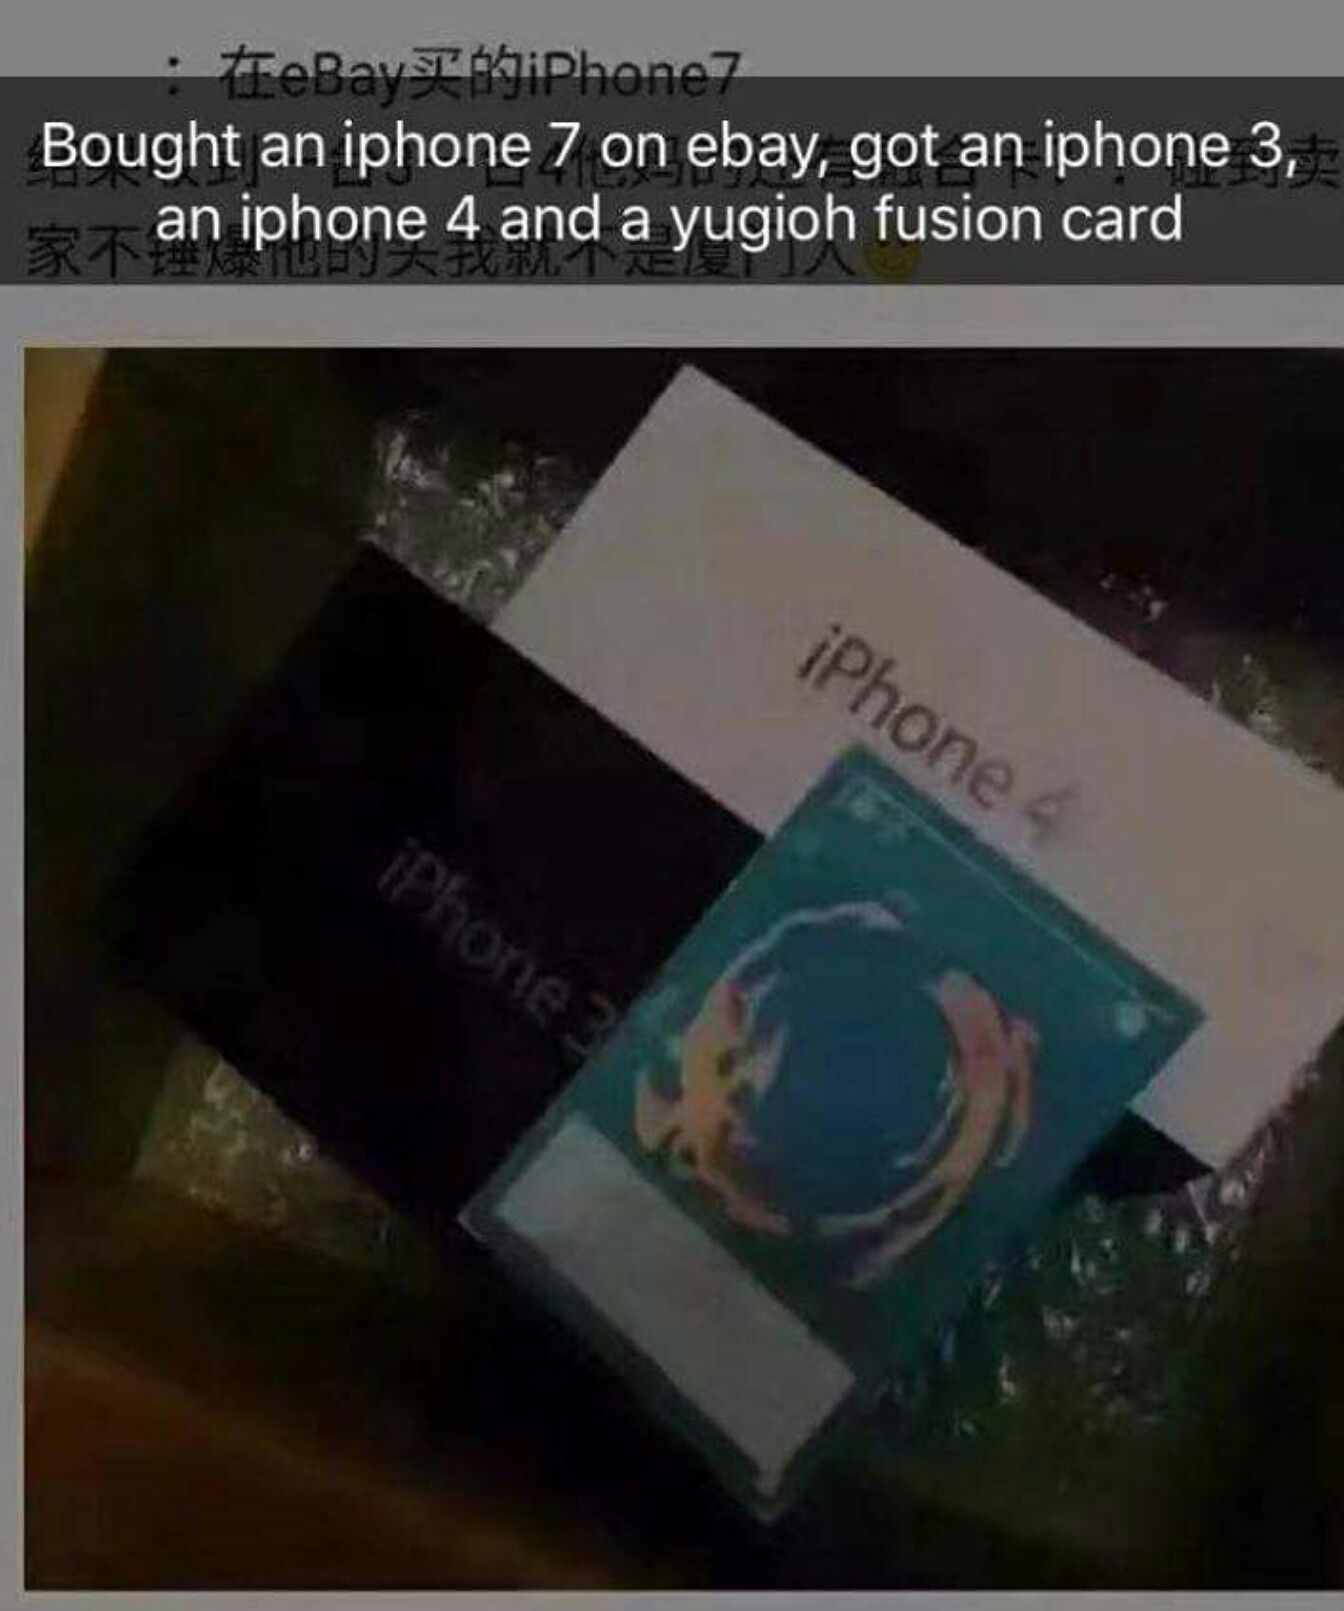 Pin by Jenny Smith on Words Yugioh fusion cards, Funny